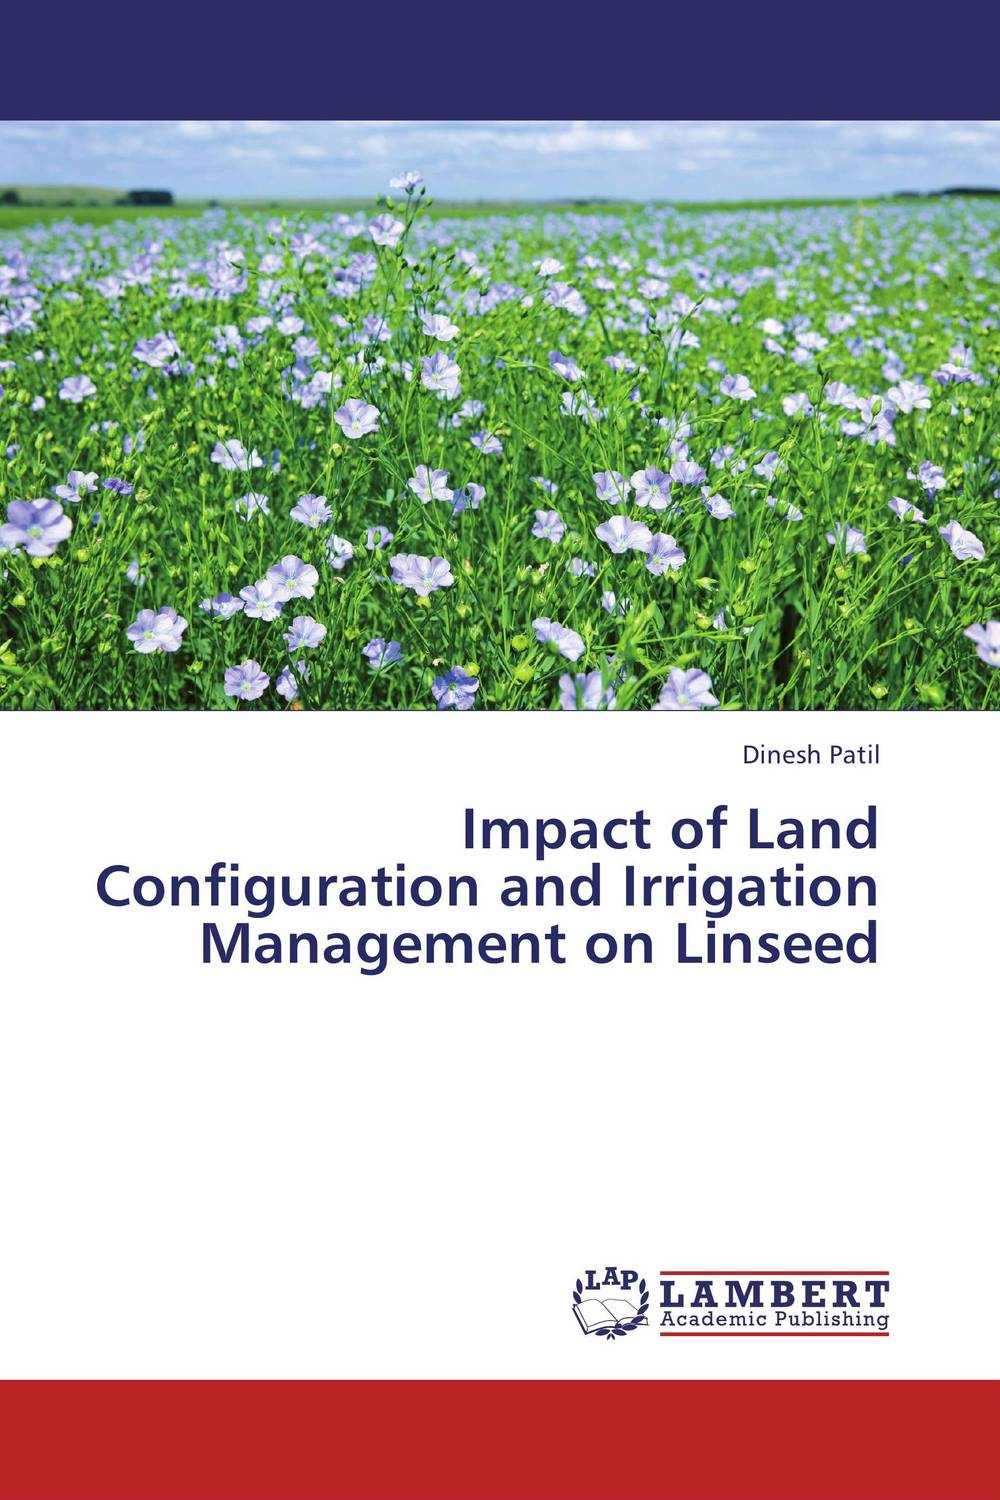 Impact of Land Configuration and Irrigation Management on Linseed